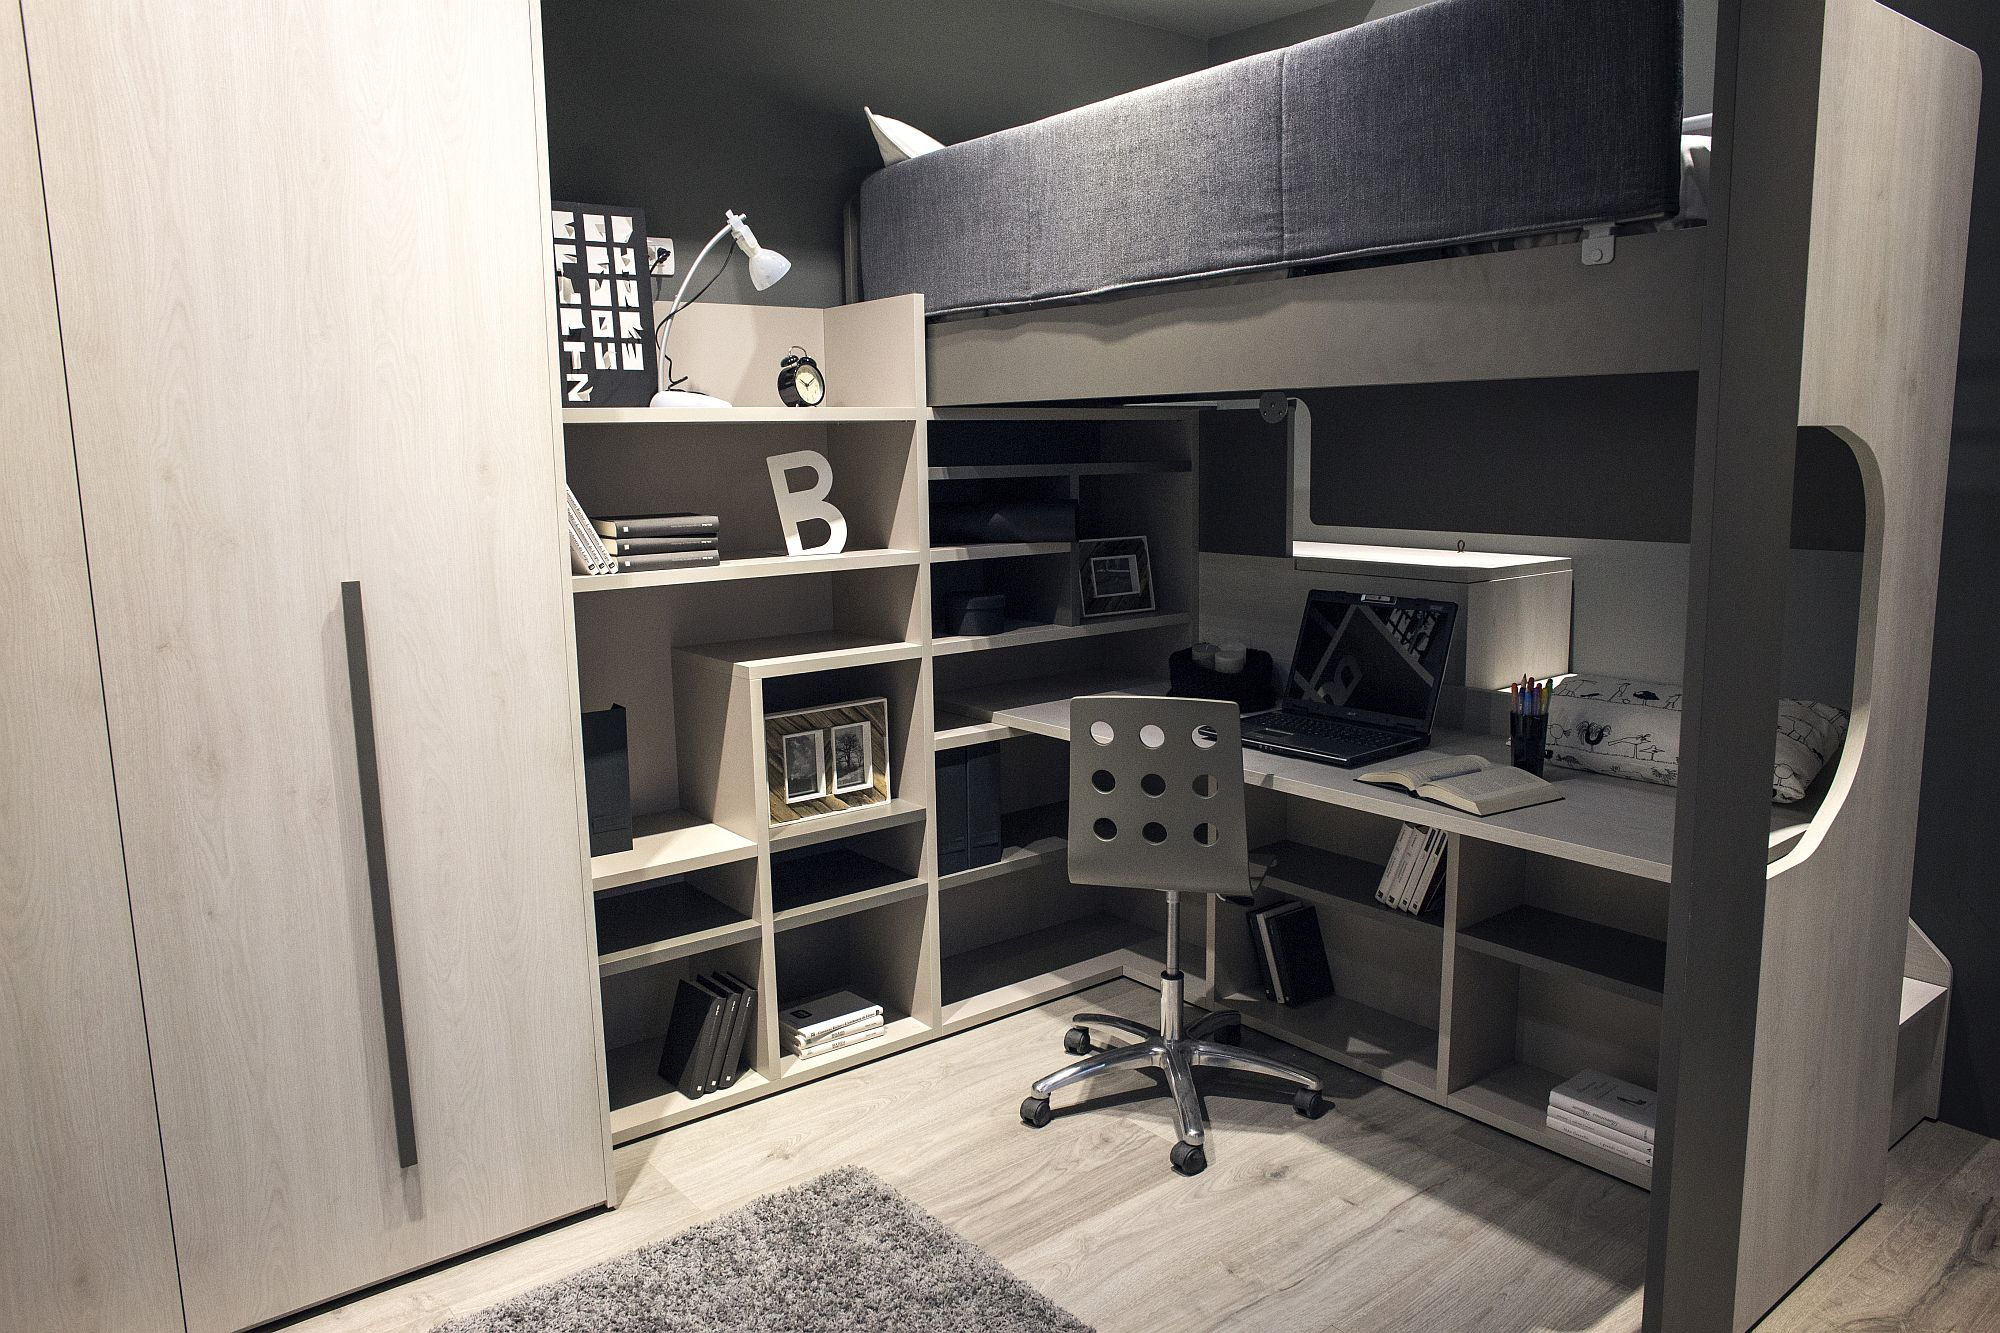 Kids' loft bed with study zone underneath